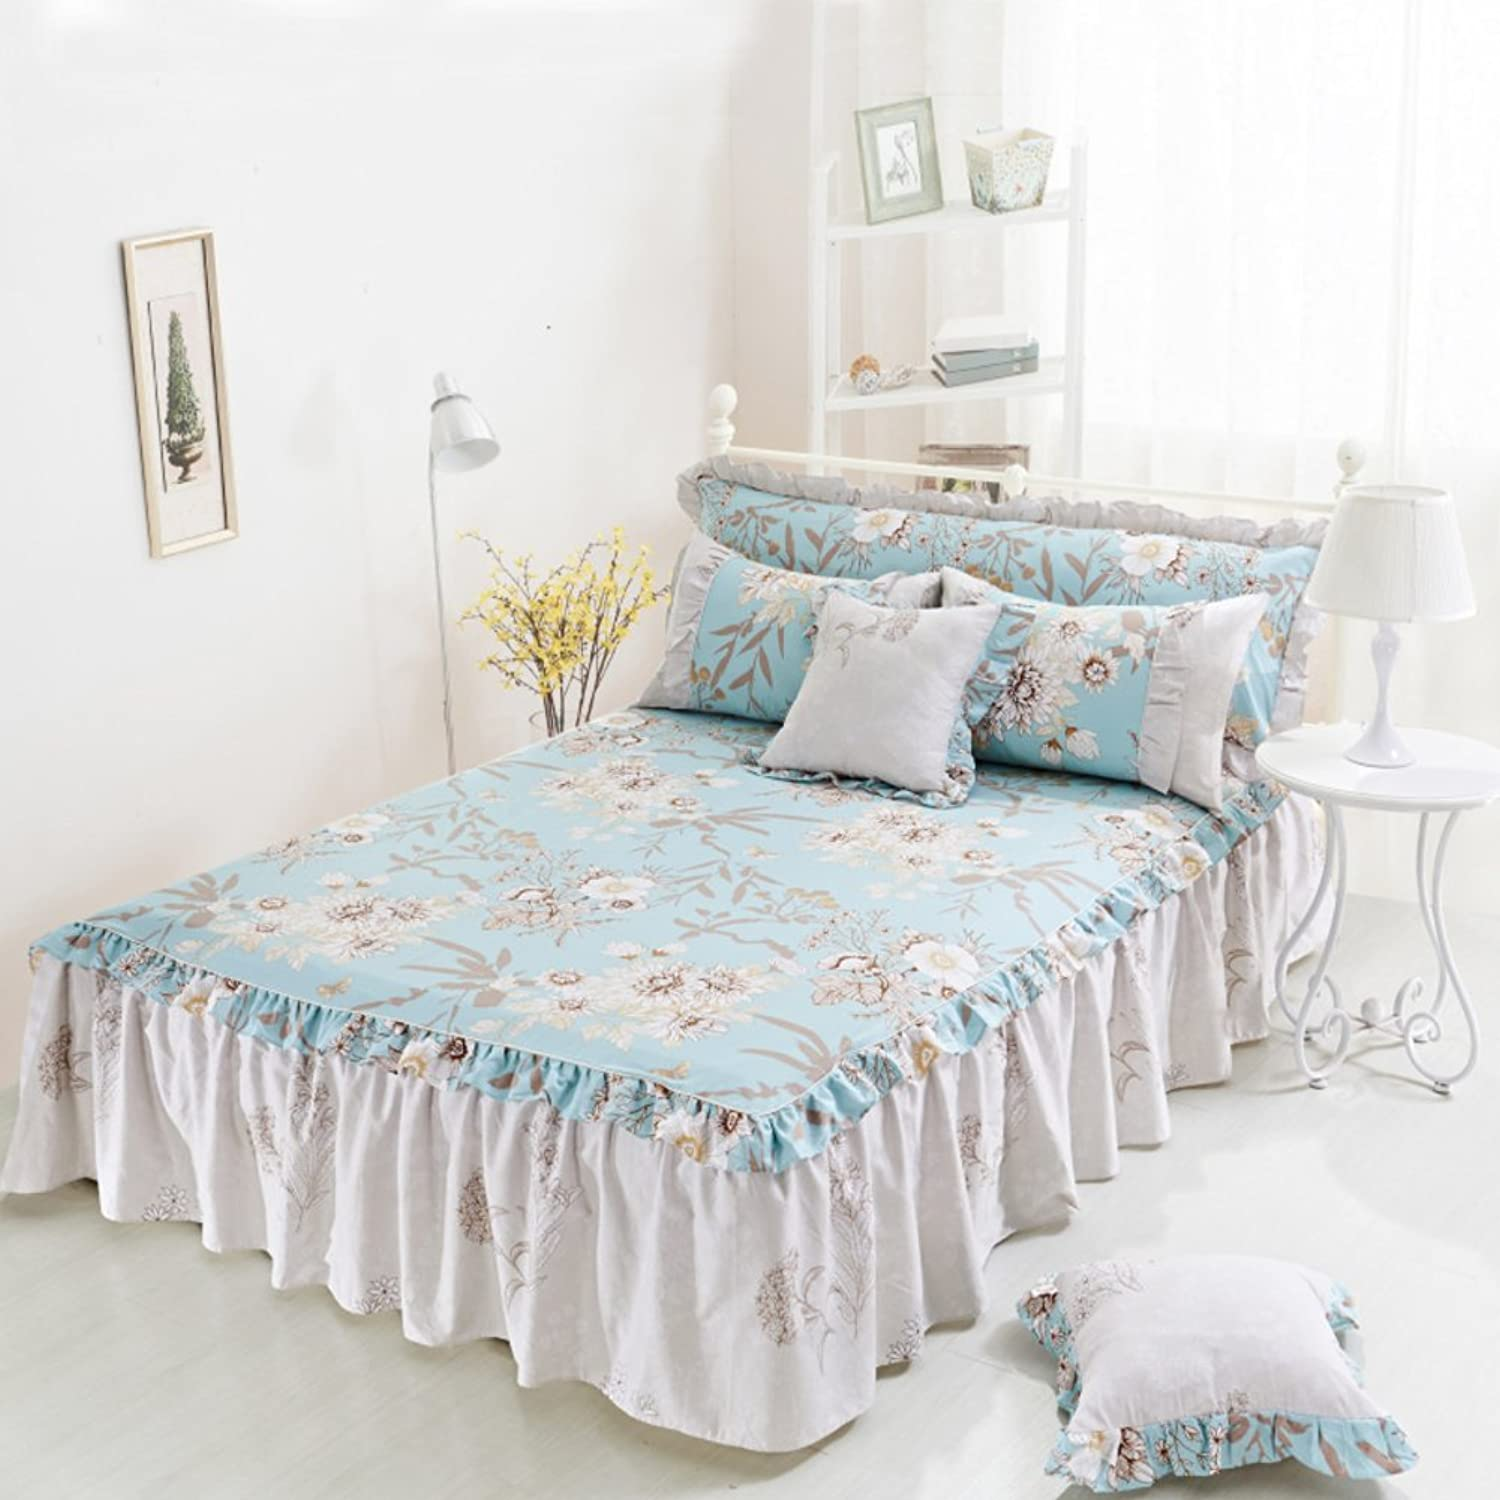 Cotton Non-Slip Bed Skirt, Single Piece Cotton Bed Cover Korean Lace Dust Bed Cover Bed Sheet-2 120x200cm(47x79inch)